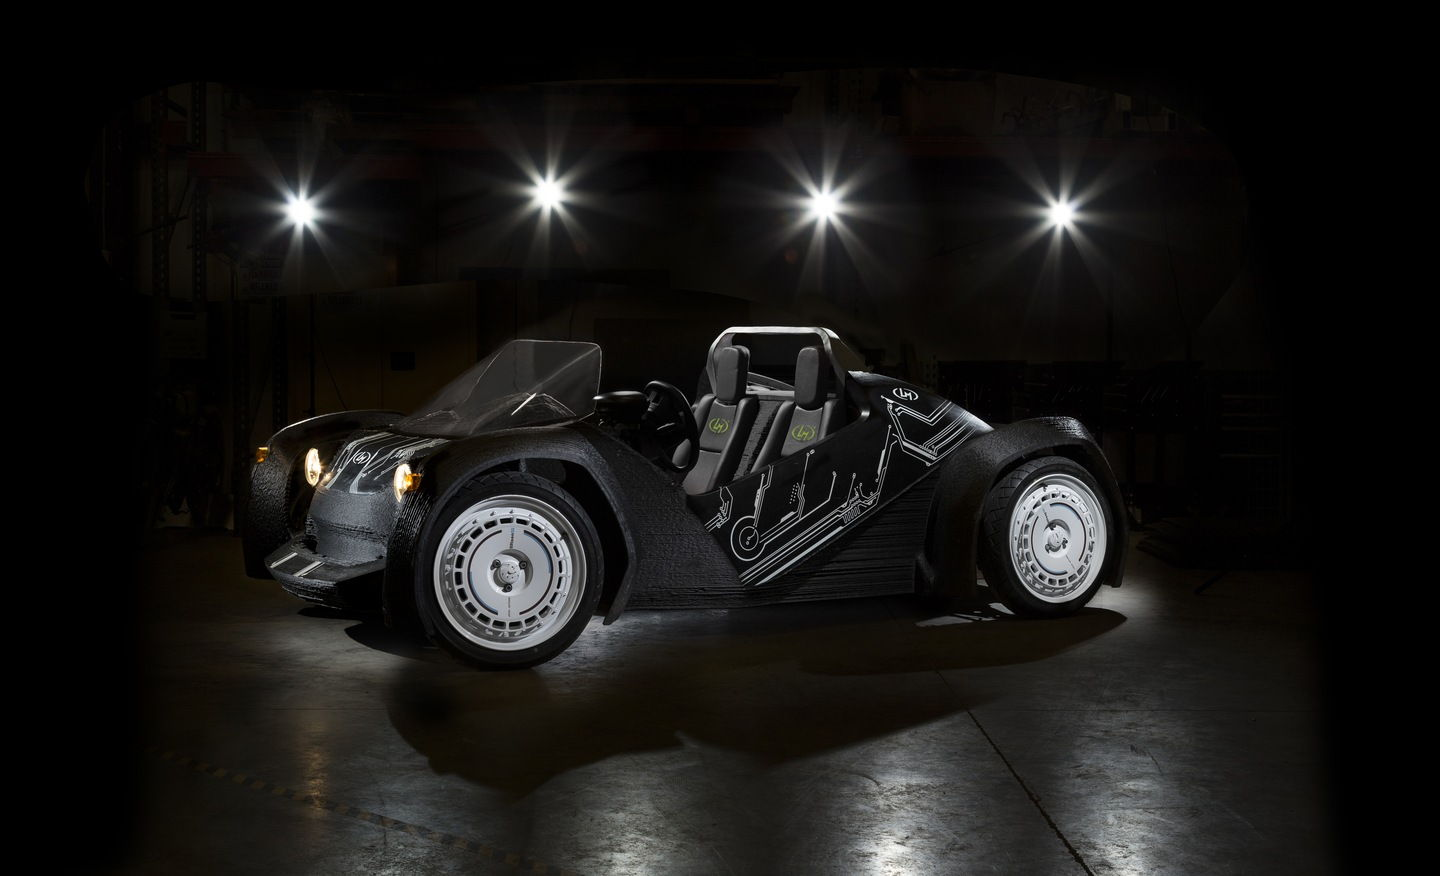 The Strati - 3D Printed Car